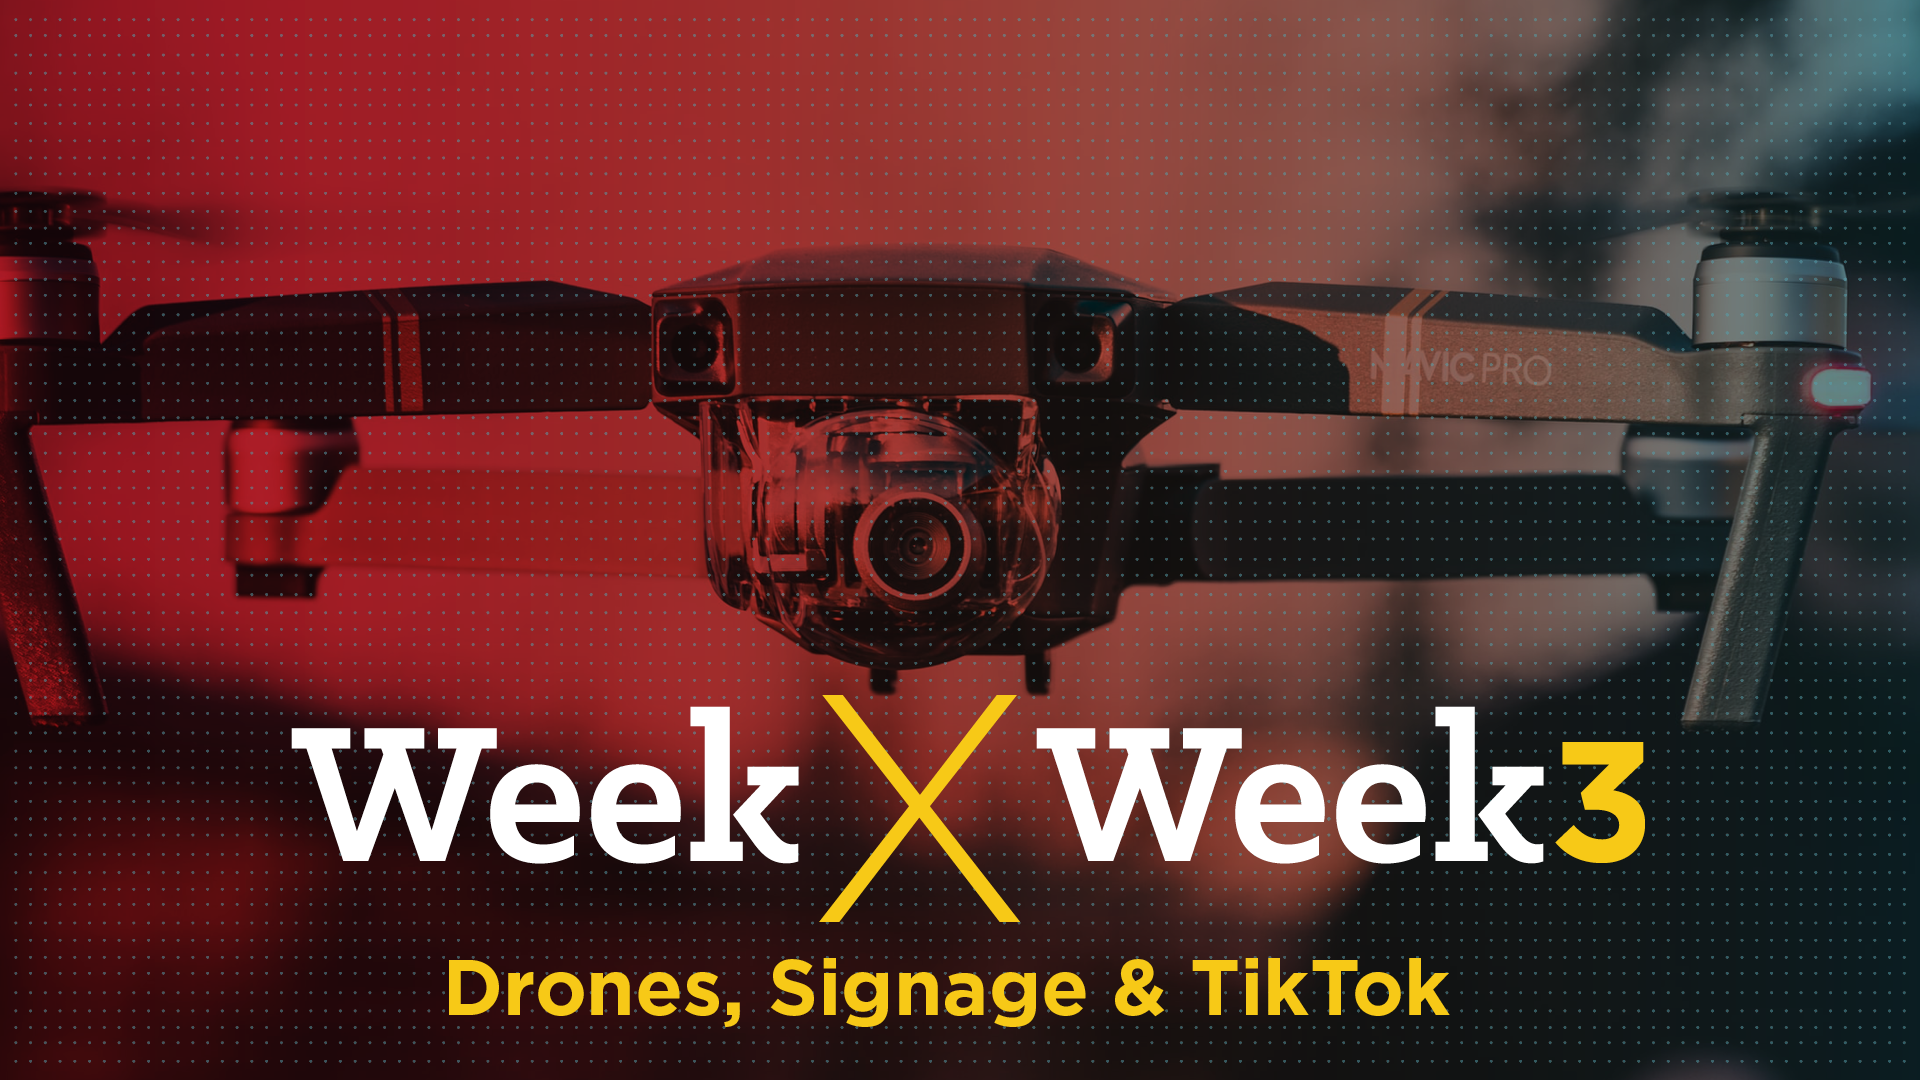 Week x Week 3: Drones, Signage & TikTok Featured Image